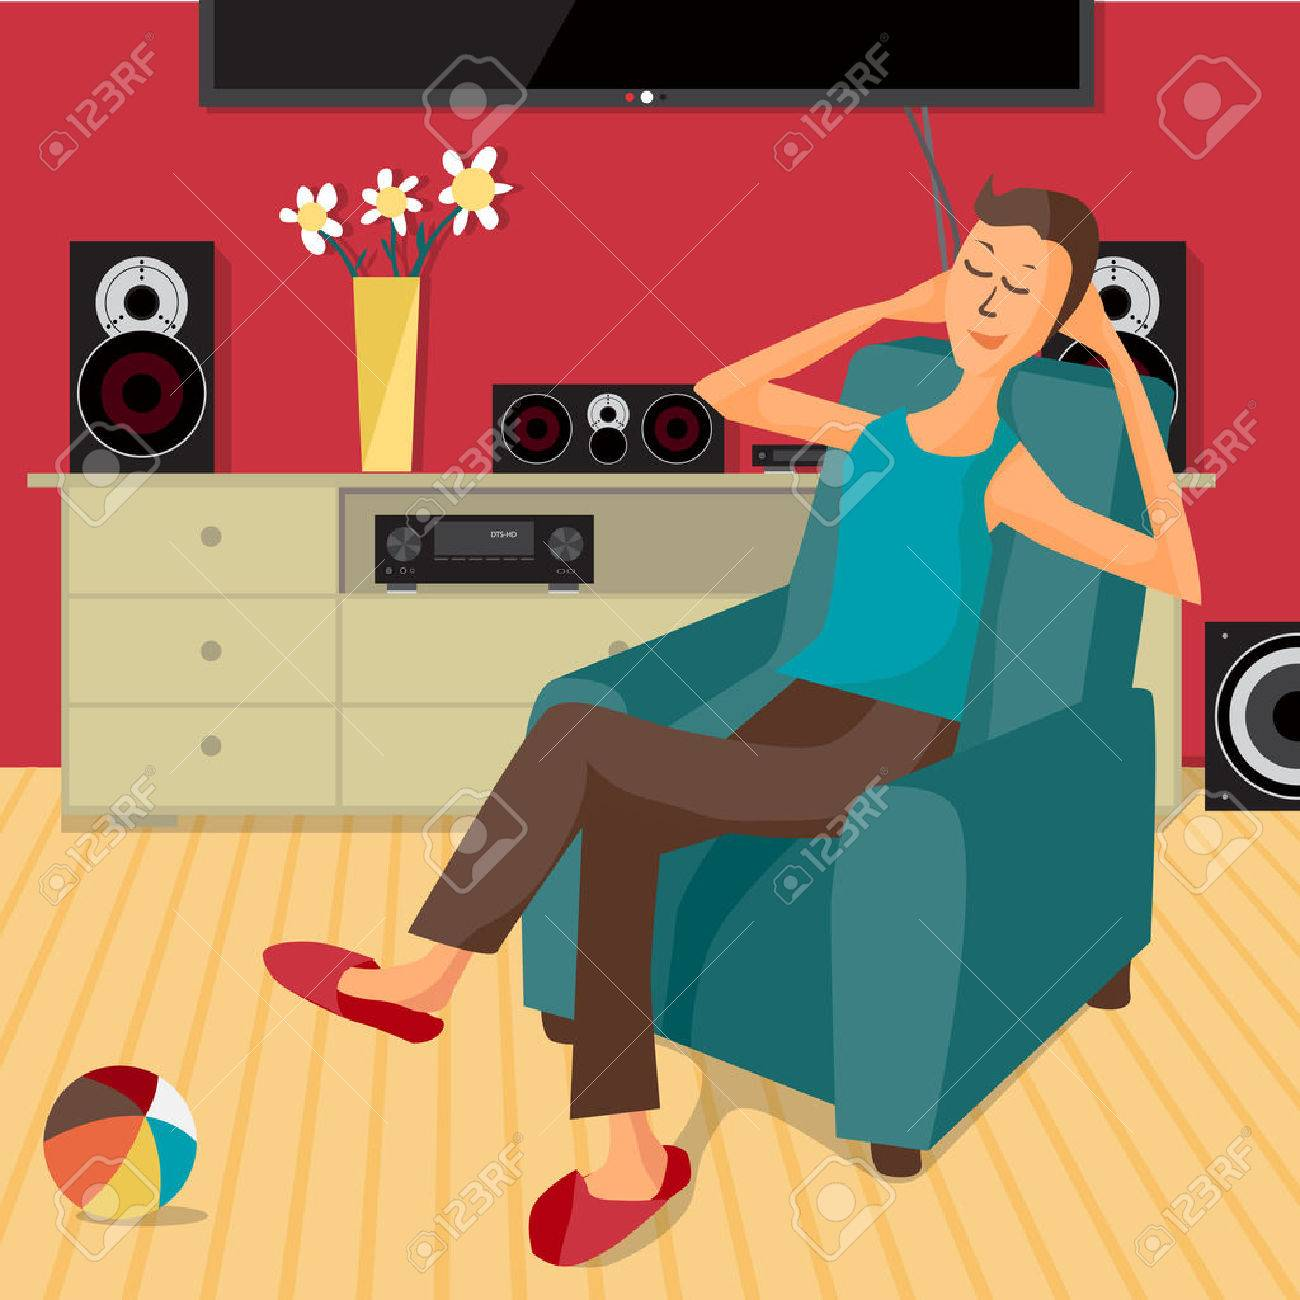 modern flat design man listens to music at home using a stereo system cartoon character